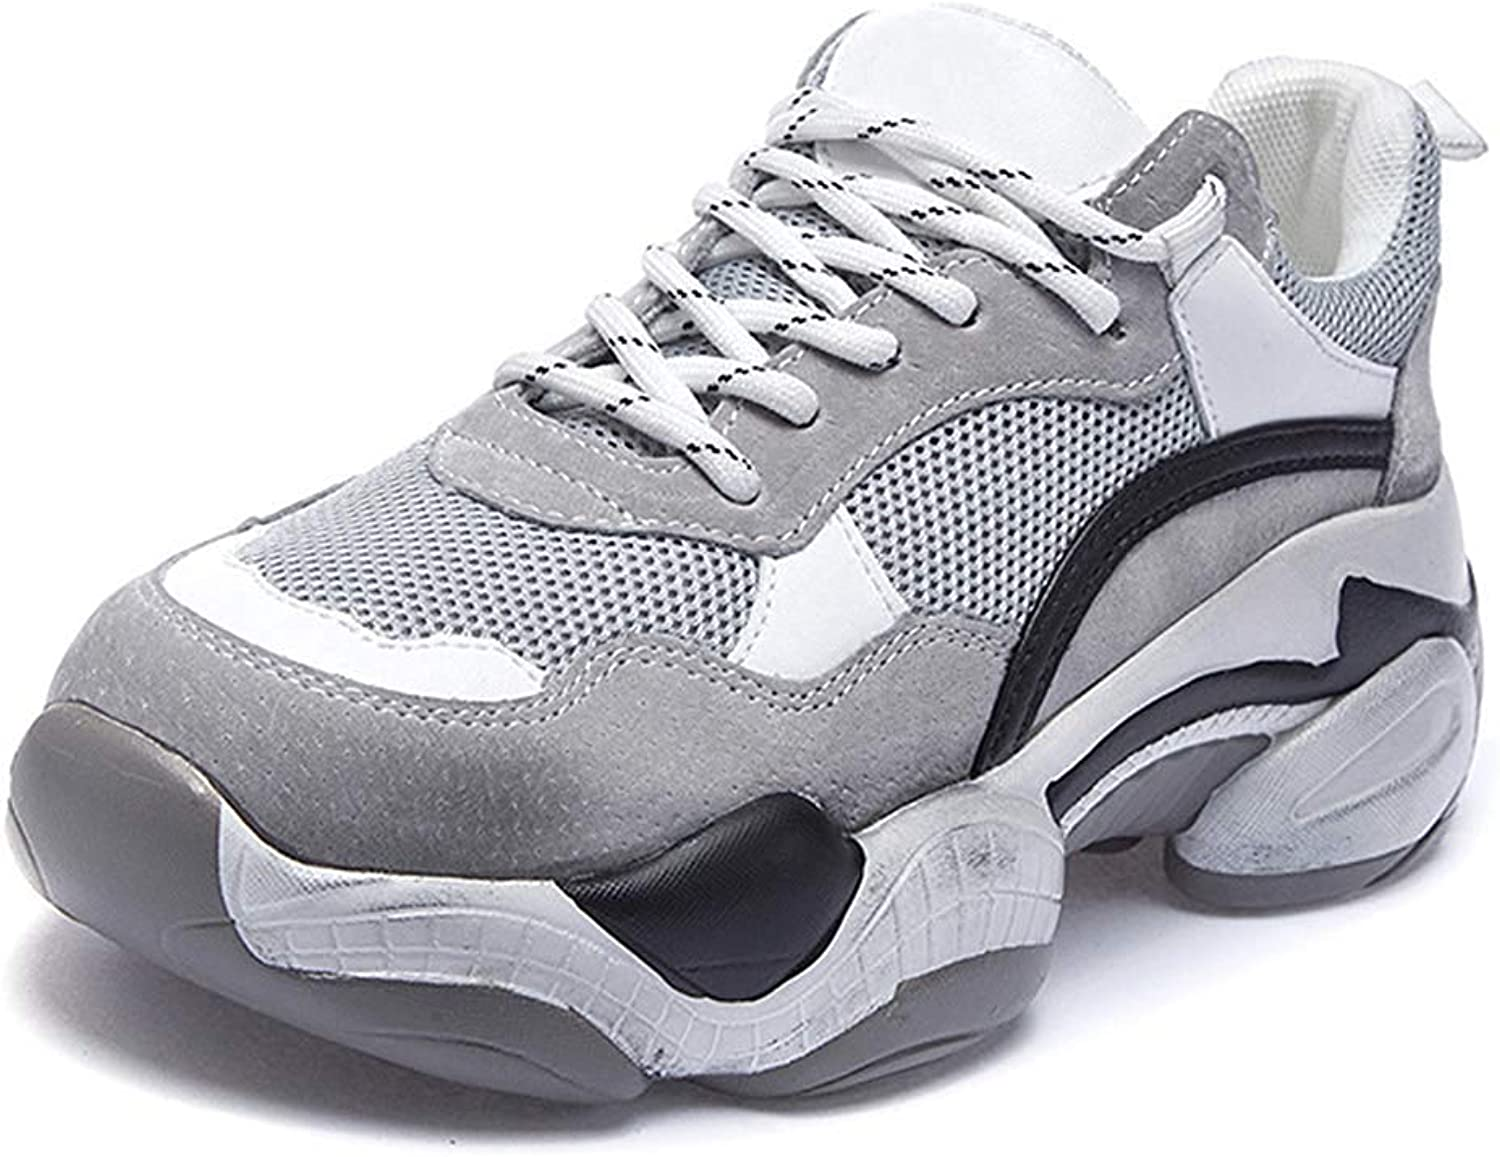 Unm Women's Thick Sole Platform Chunky Sneakers - Casual Mesh Breathable - Flat Thick Sole Dad shoes